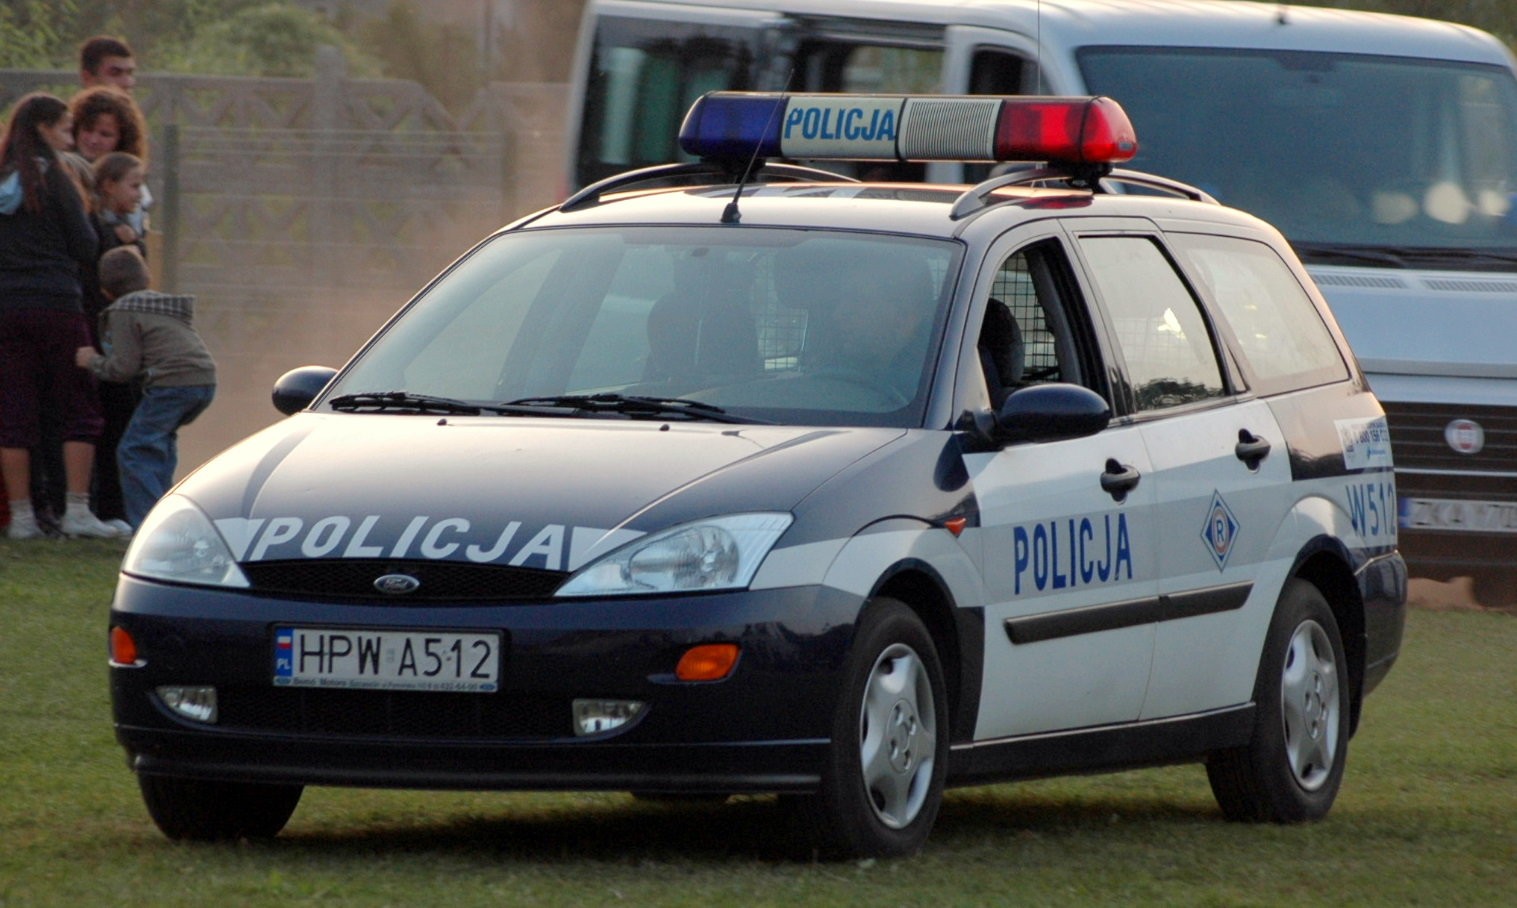 File:Ford Focus Policja Wolin.jpg - Wikimedia Commons